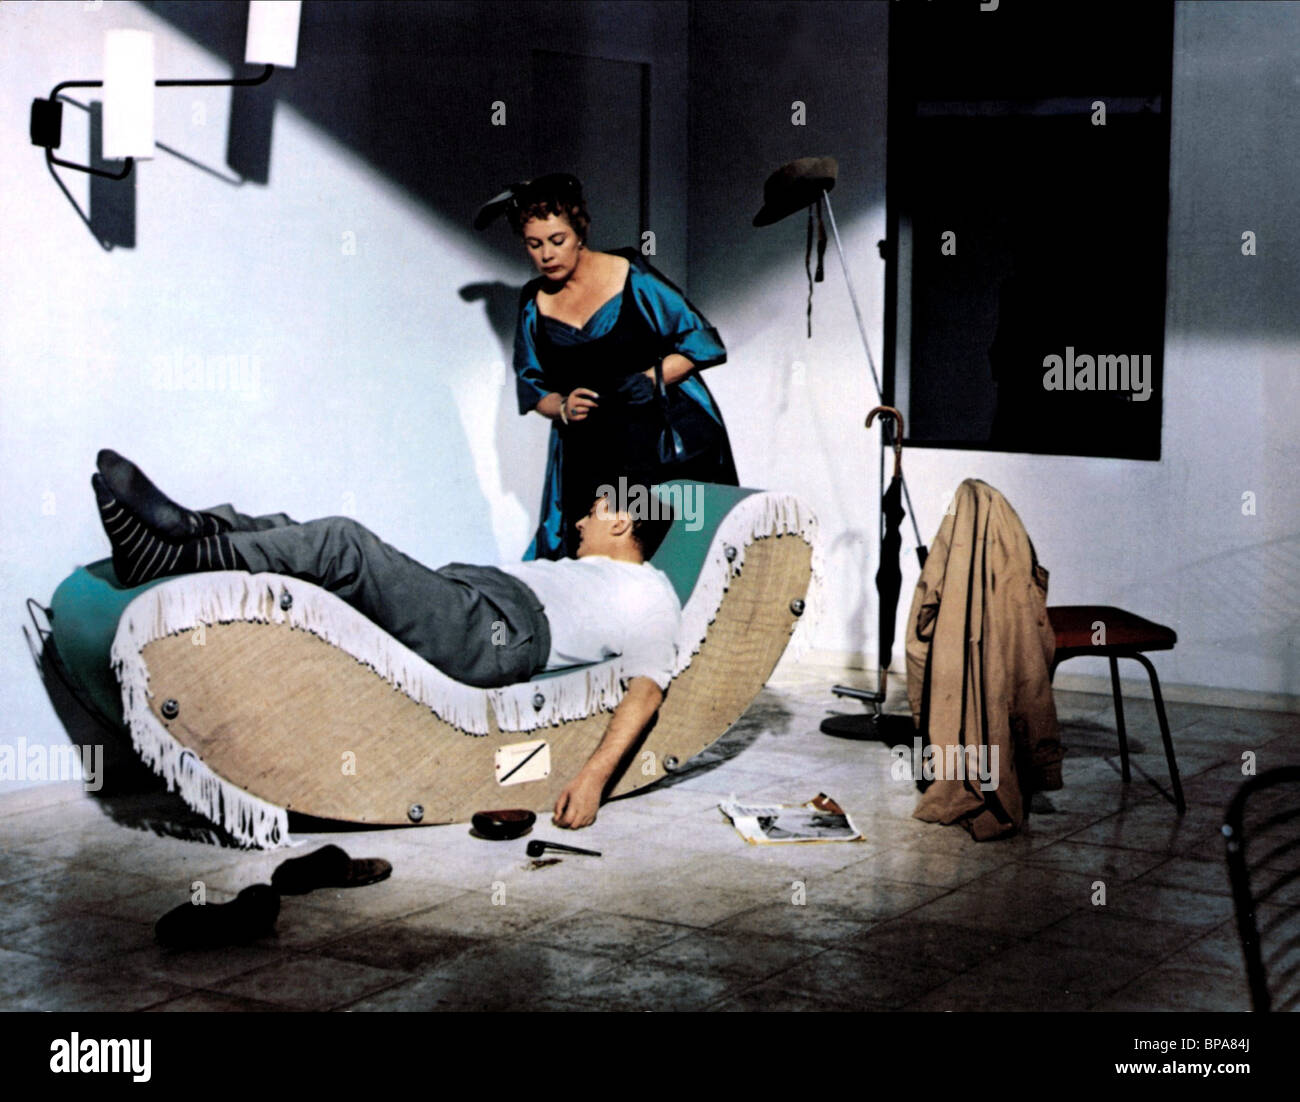 Jacques tati adrienne servantie my uncle mon oncle 1958 stock photo - Jacques tati mon oncle ...